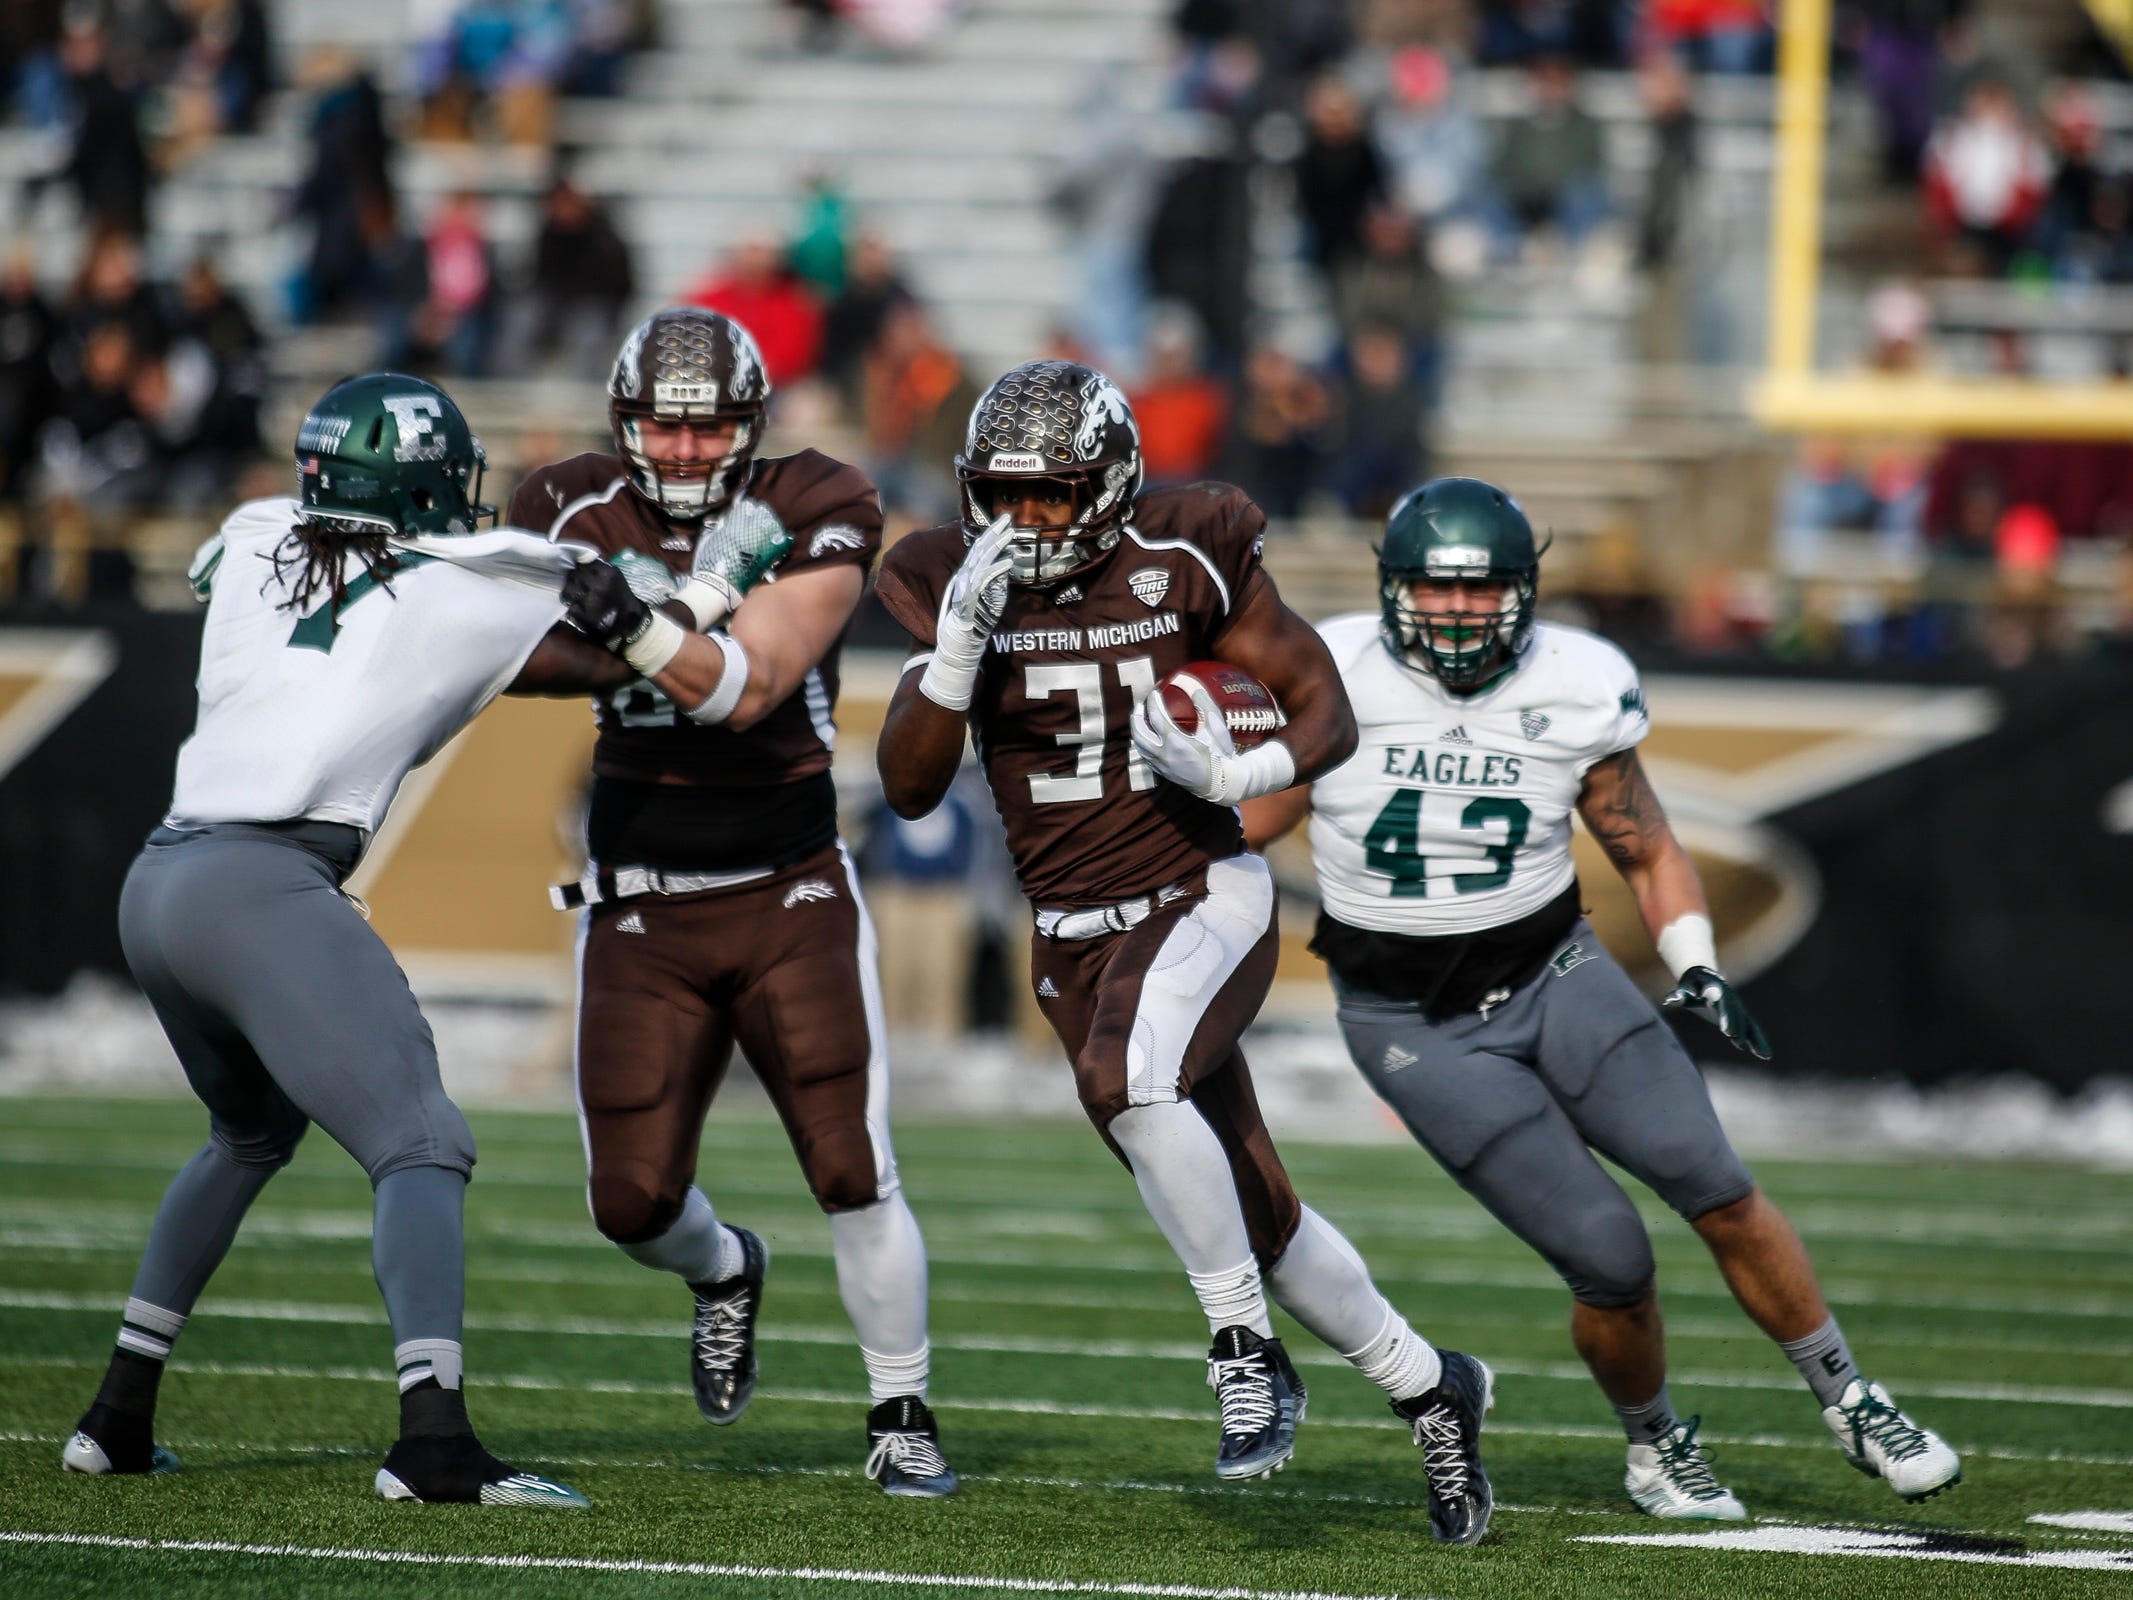 8. Eastern Michigan at Western Michigan. When: Oct. 6. Where: Kalamazoo. The buzz: The Broncos topped the Eagles, 20-17 in overtime, last season. EMU hasn't beaten WMU since 2013, and hasn't won the Michigan MAC trophy since 2012.